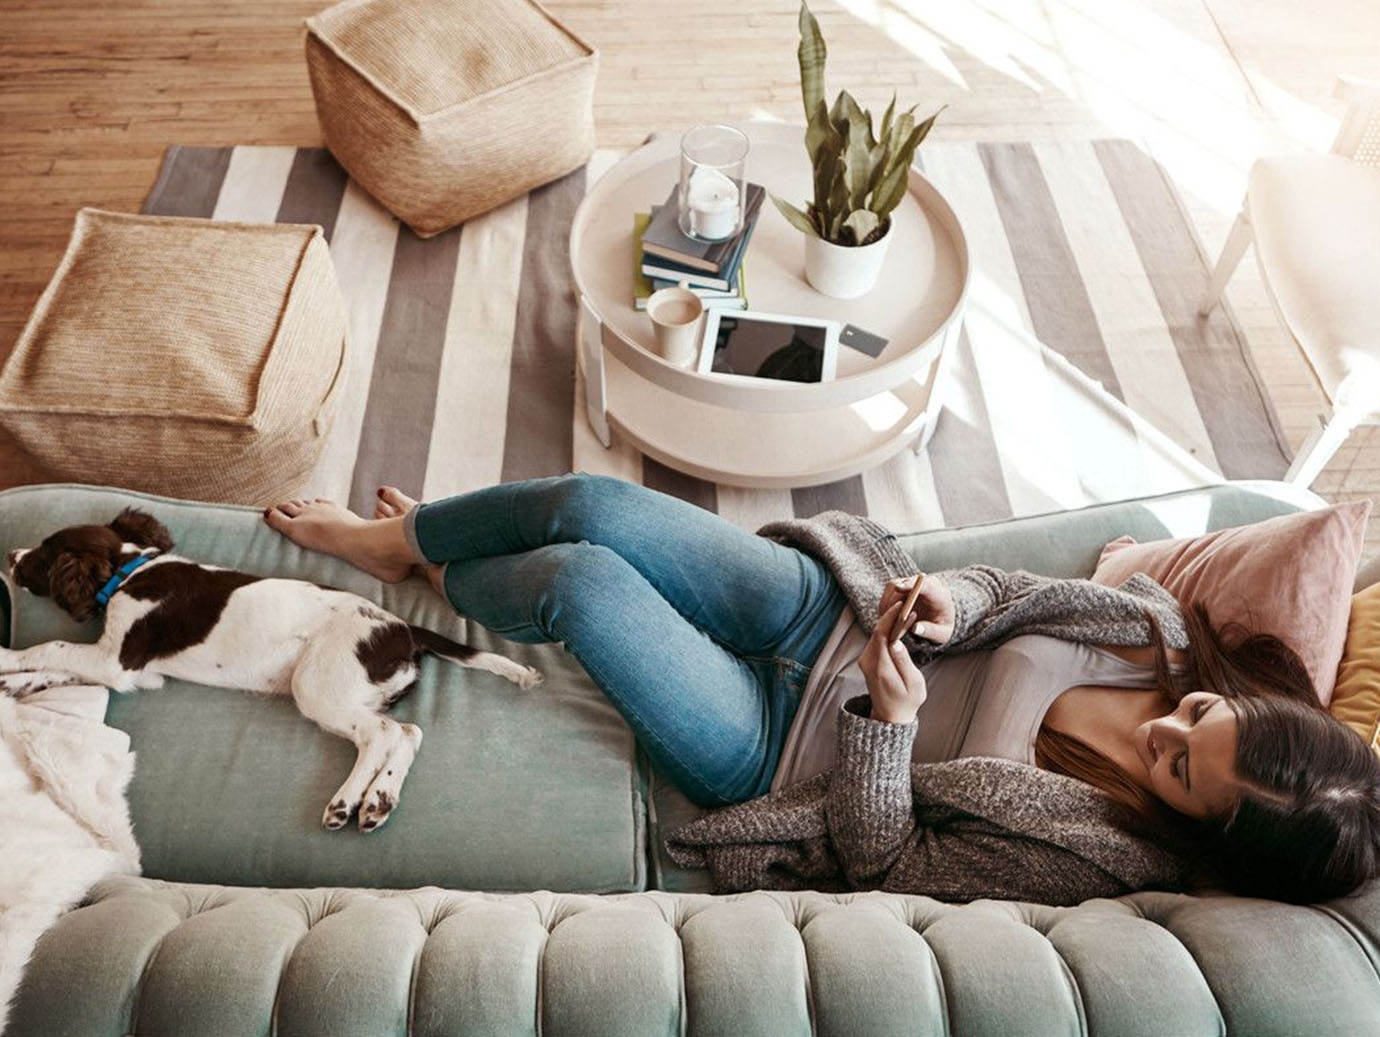 A woman relaxing on the sofa with her dog and using a mobile phone